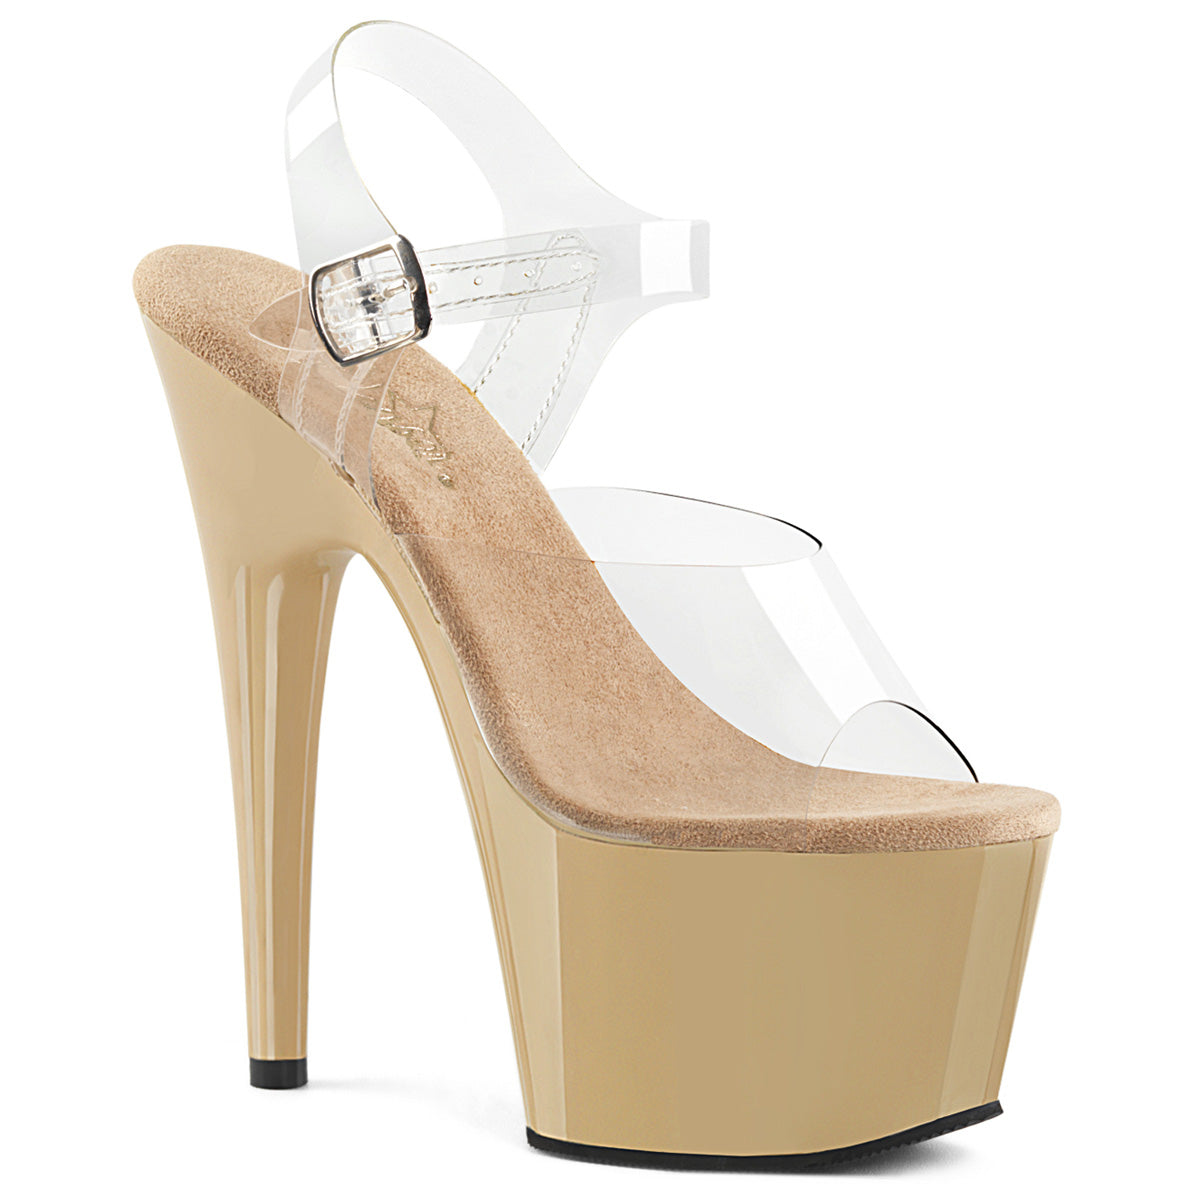 437099351cd Adore-708 – Pleaser Shoes